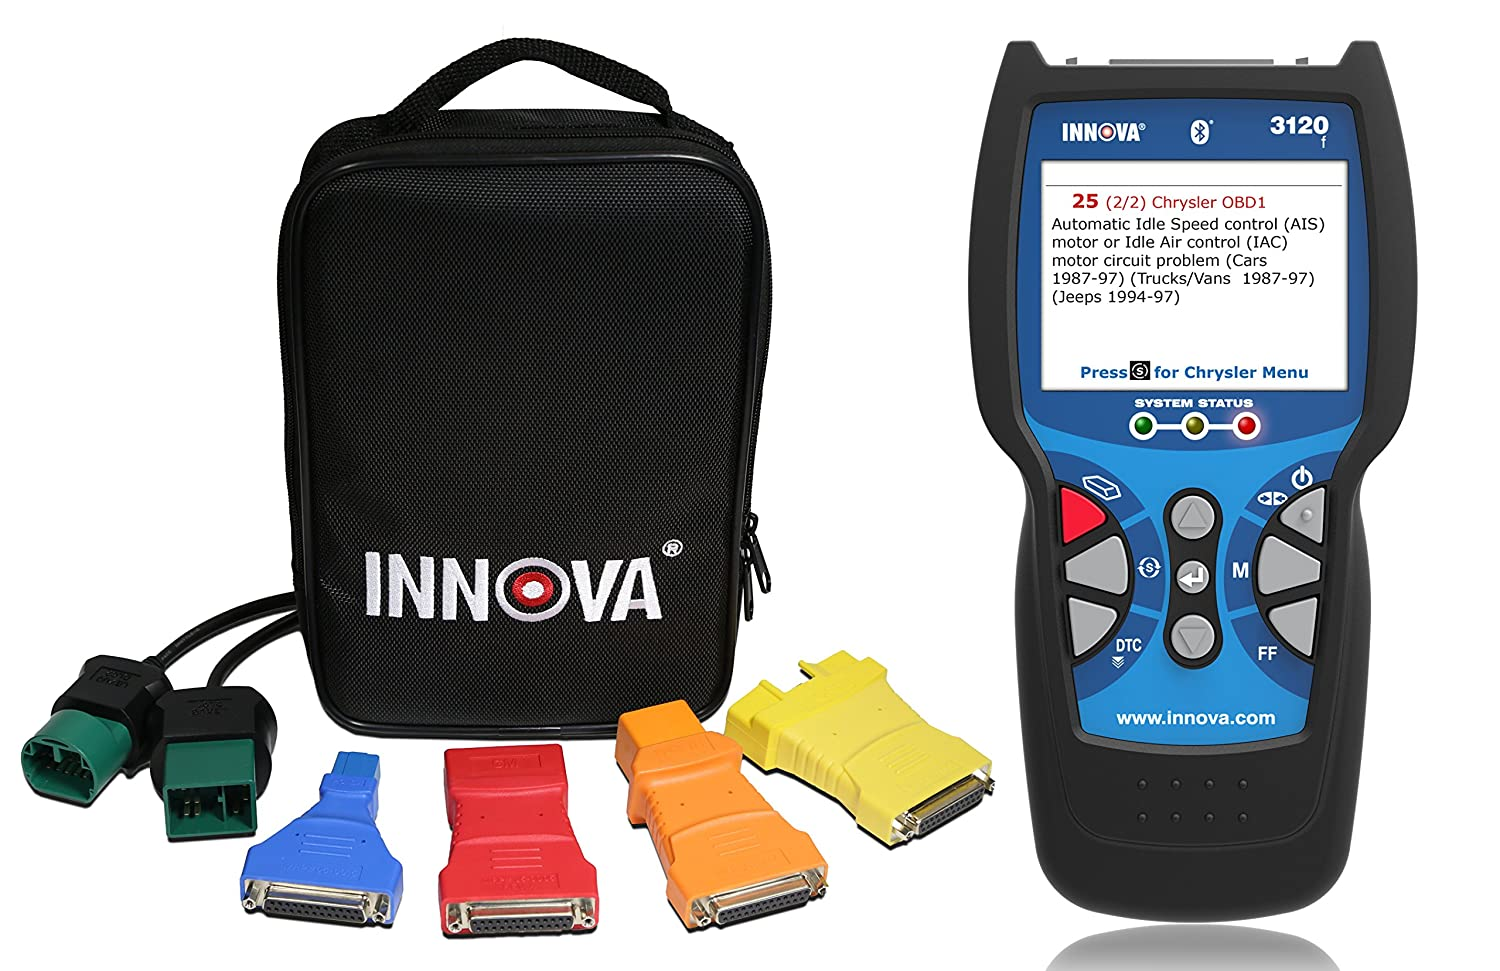 Innova 3120f Code Reader / Scan Tool with ABS